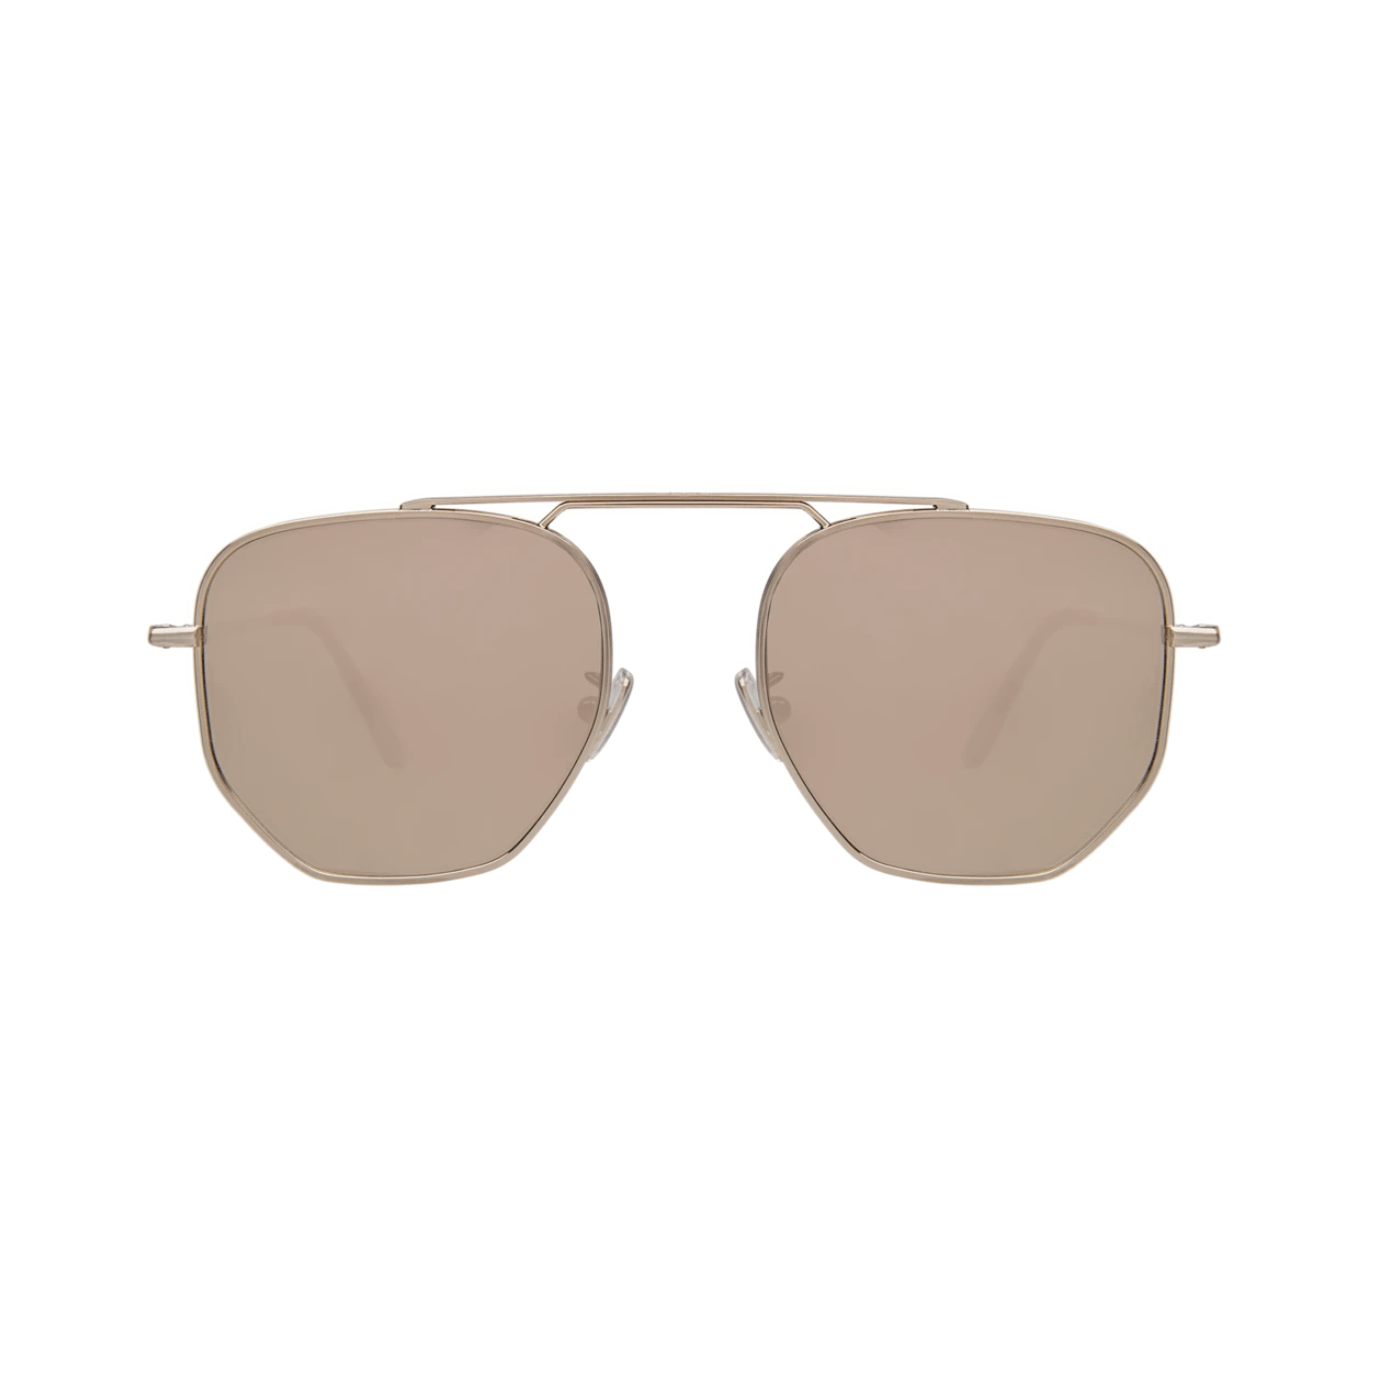 Patmos Sunglasses / Neighborhood Goods